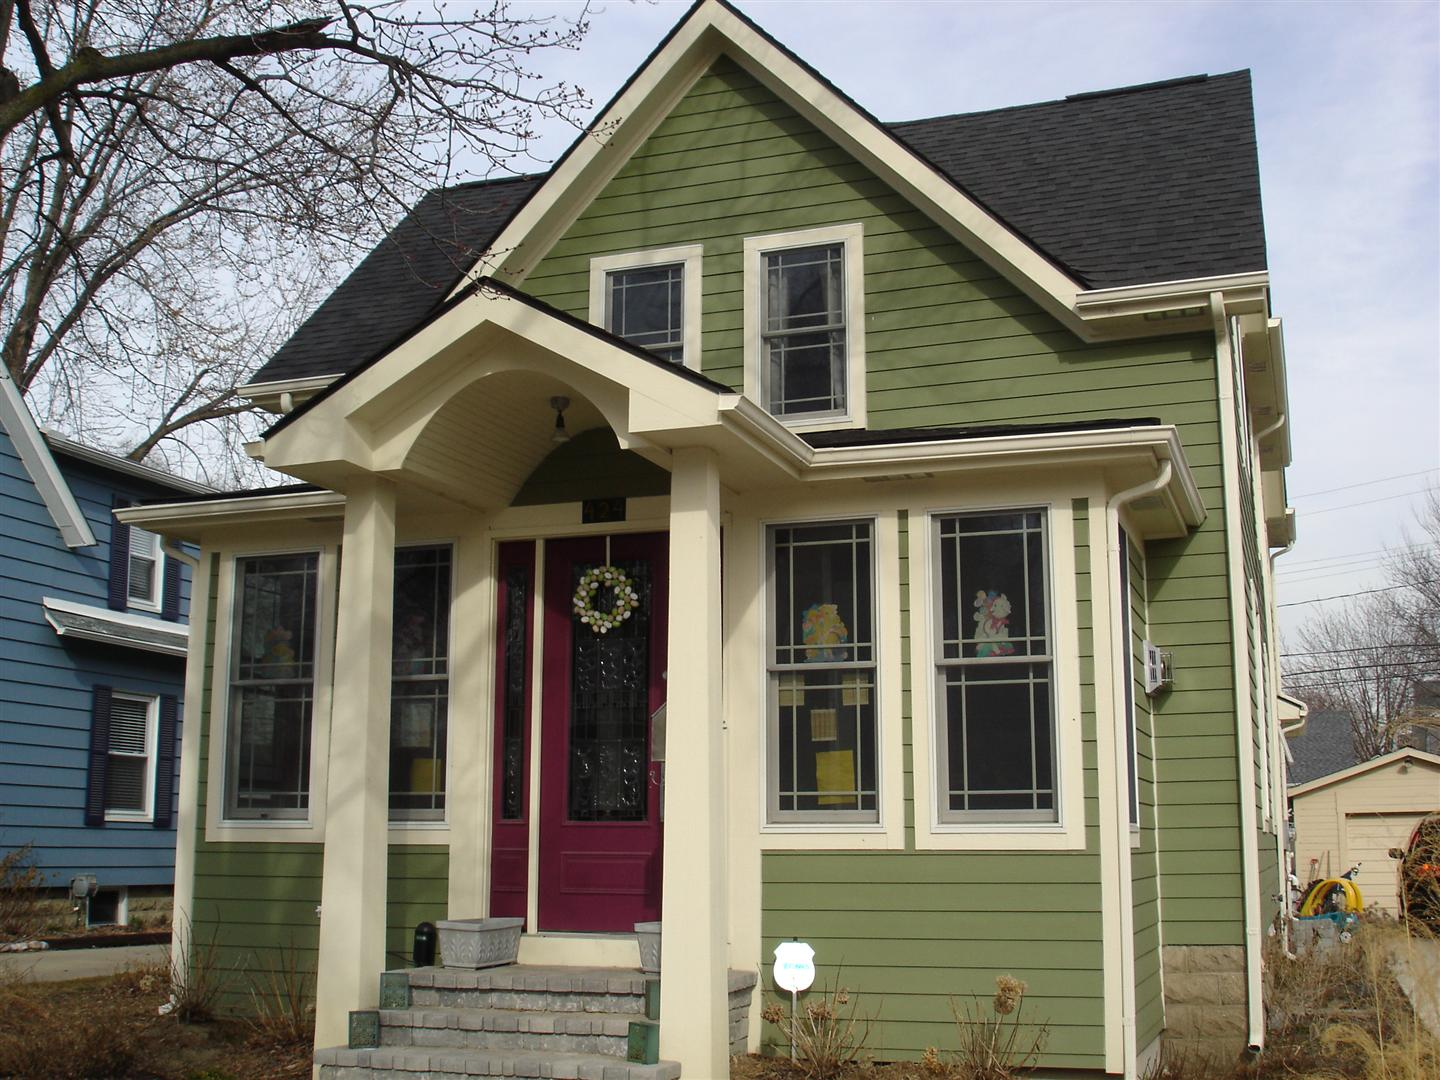 great horizontal hardie plank siding in green with white trim board and glass window plus wooden door for home exterior design ideas